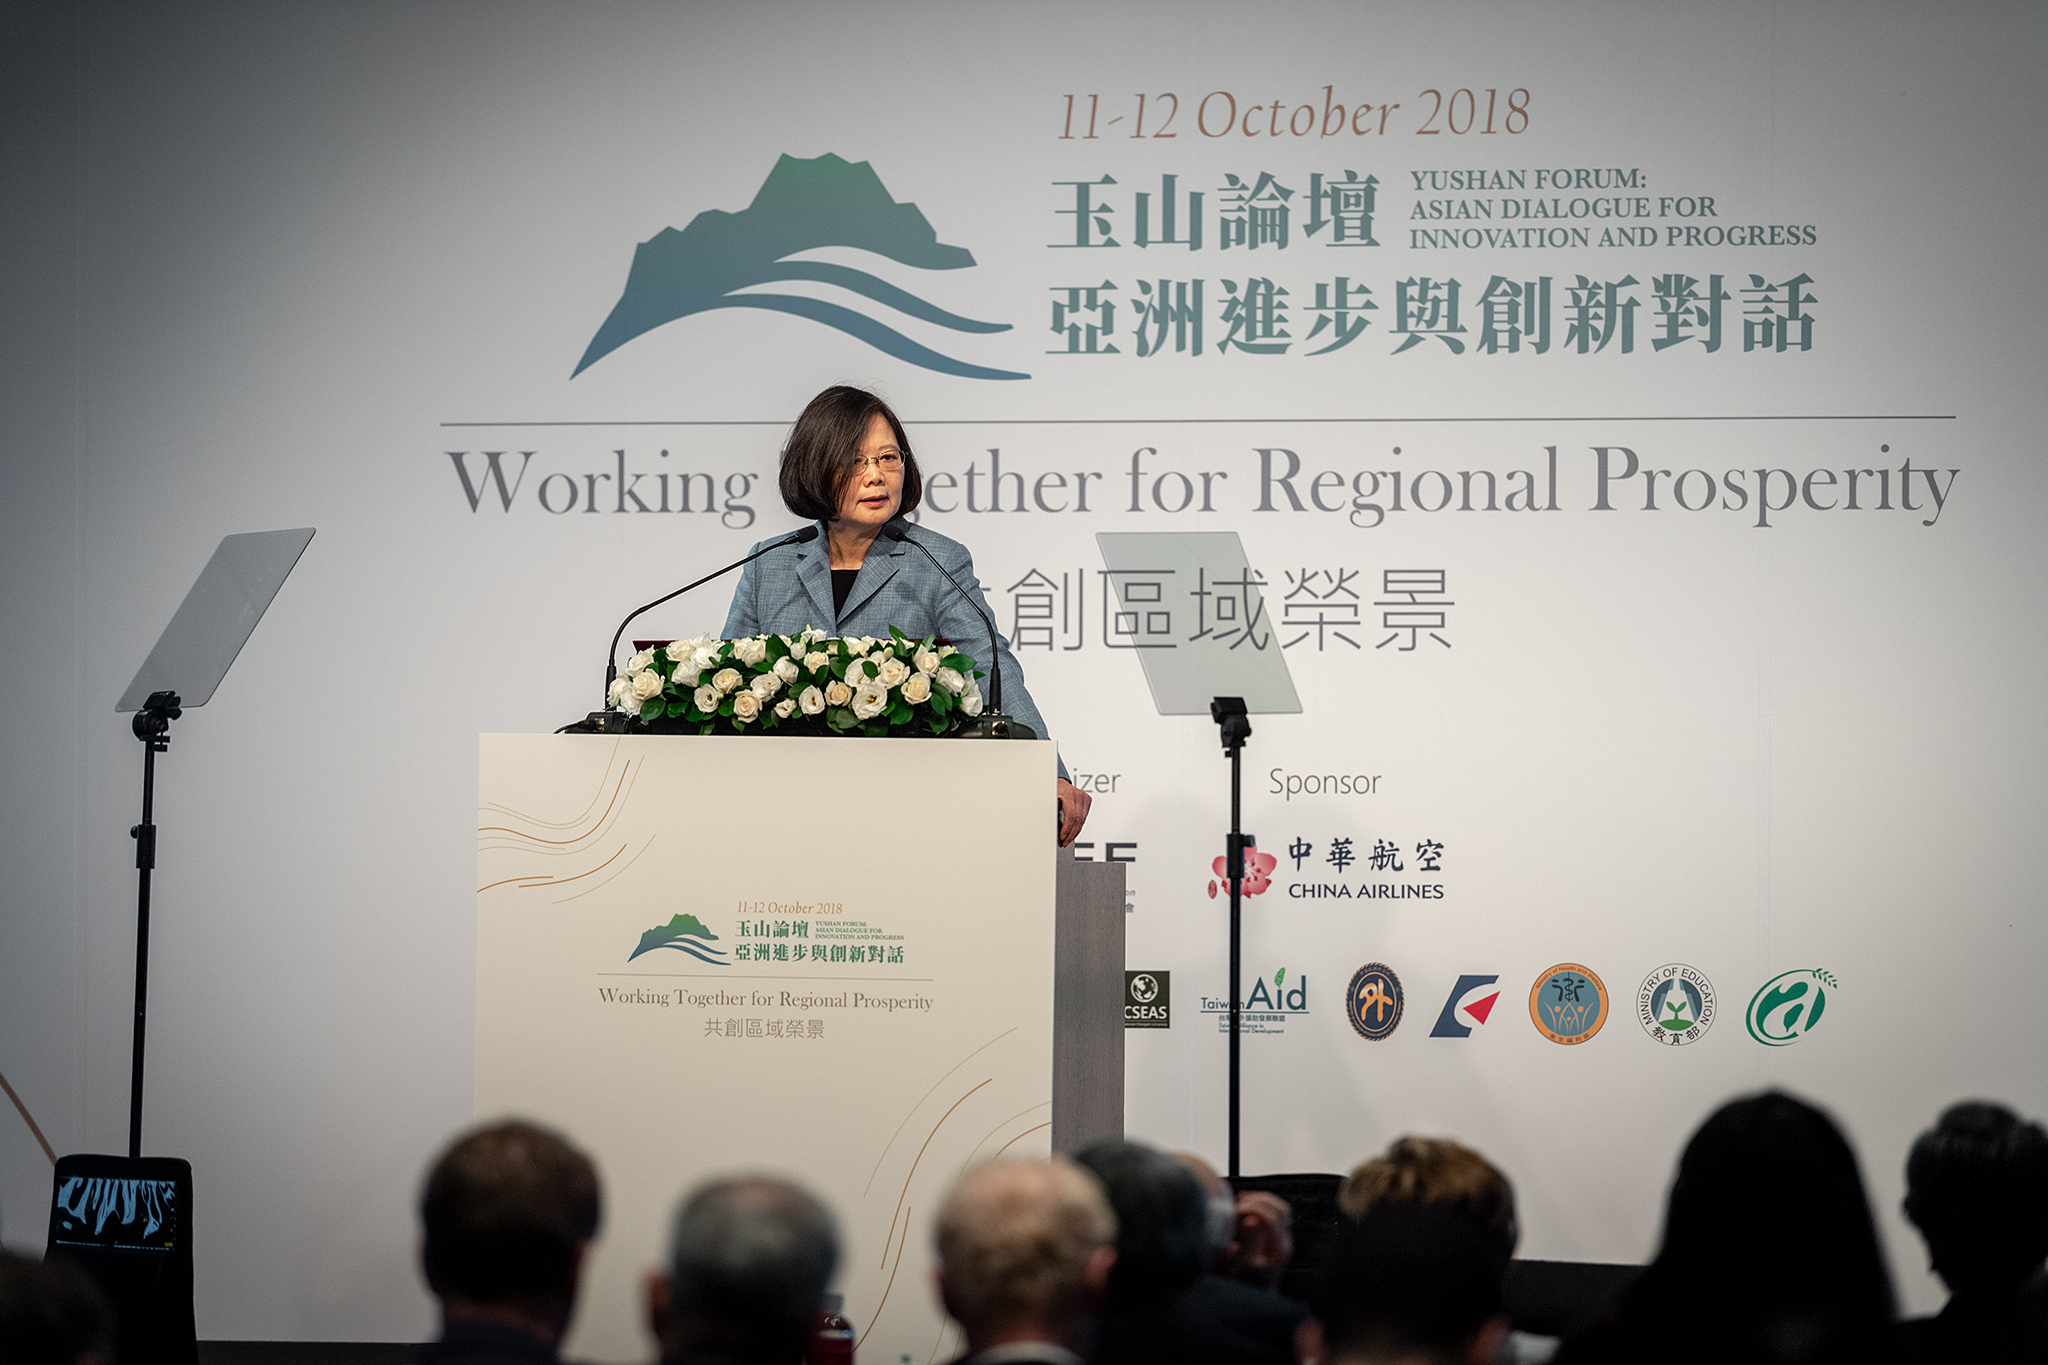 New Southbound Policy。President Tsai Ing-wen delivers her opening address at the Yushan Forum Oct. 11 in Taipei City. (Courtesy of Office of the President)